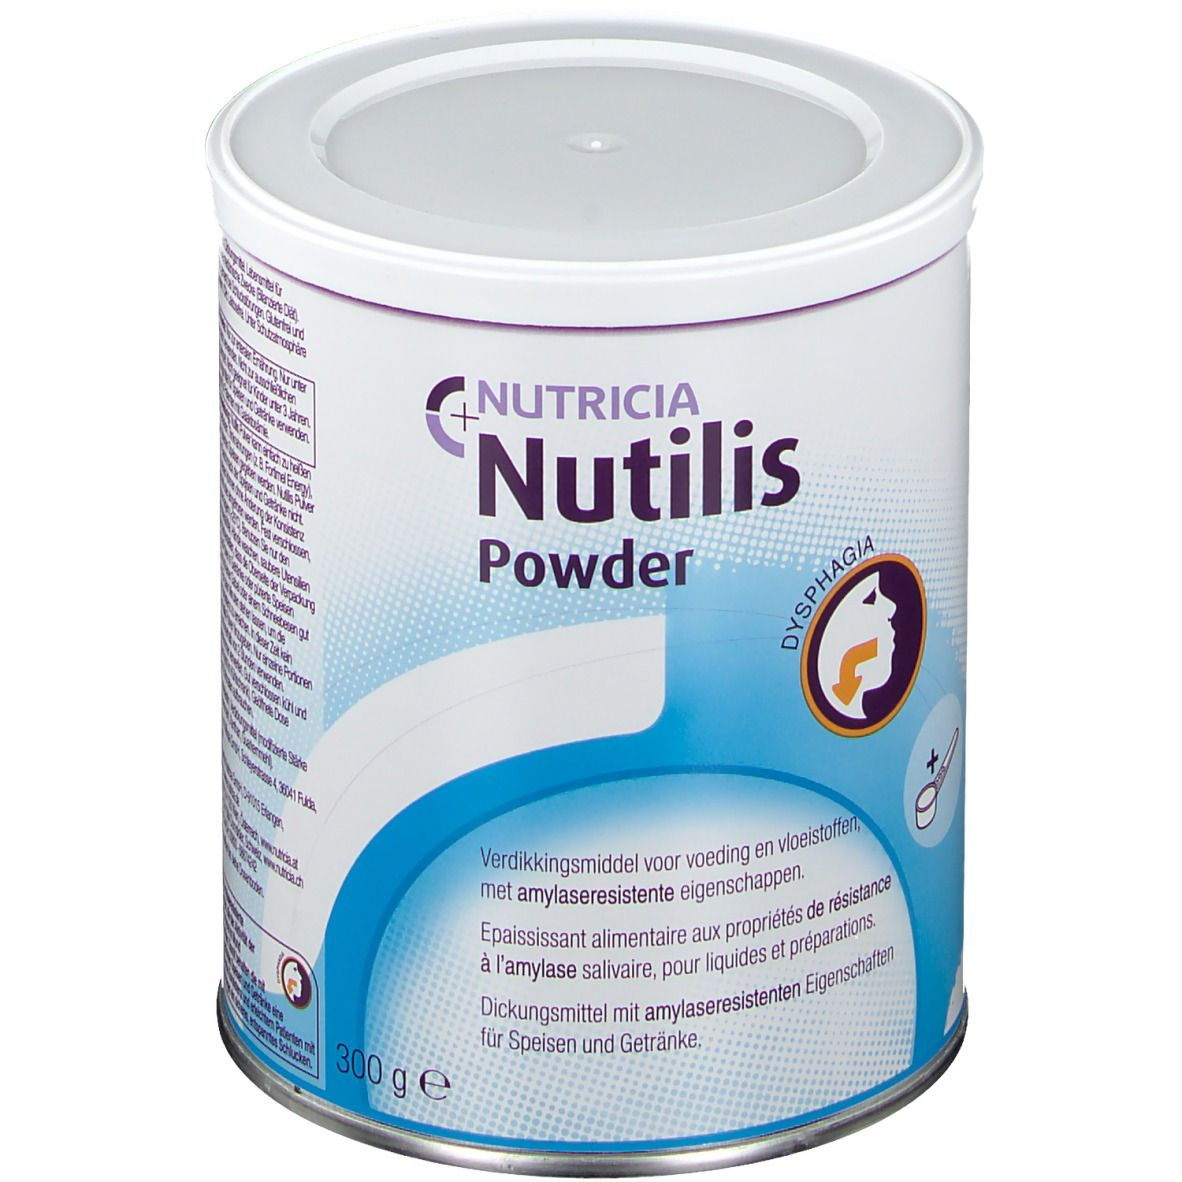 Image of Nutilis Powder Andickungsmittel